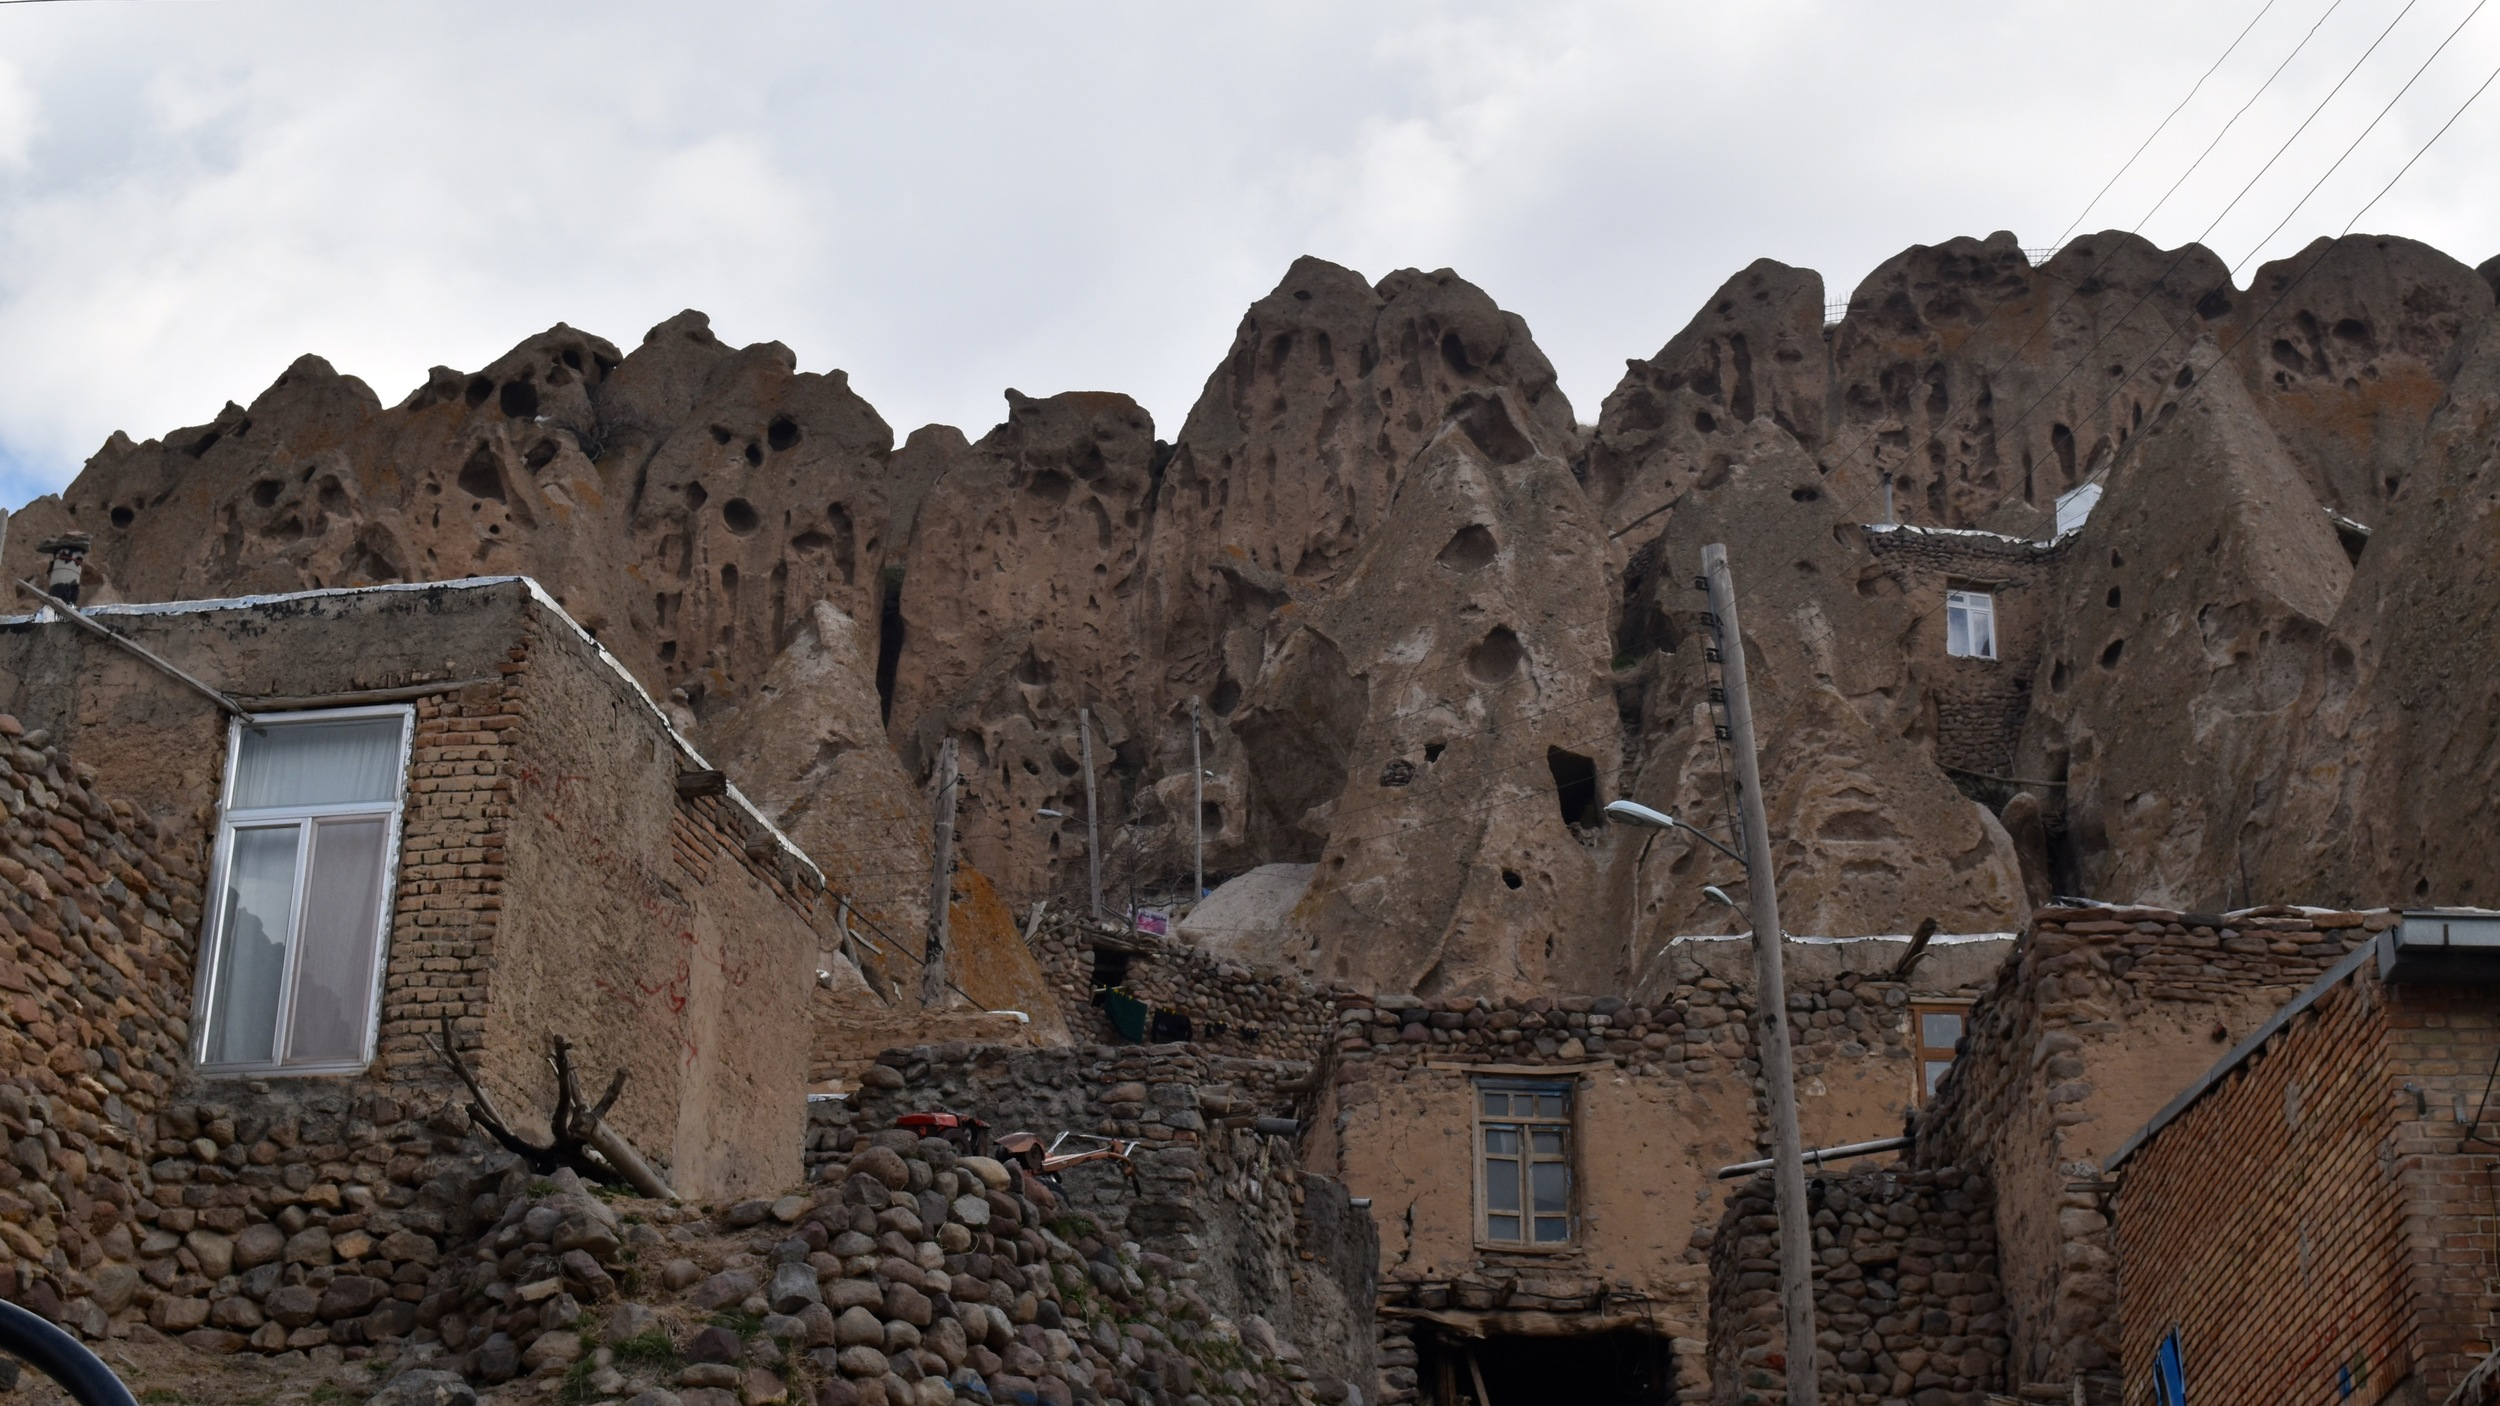 Iran-NW-Kandovan-homes.jpg